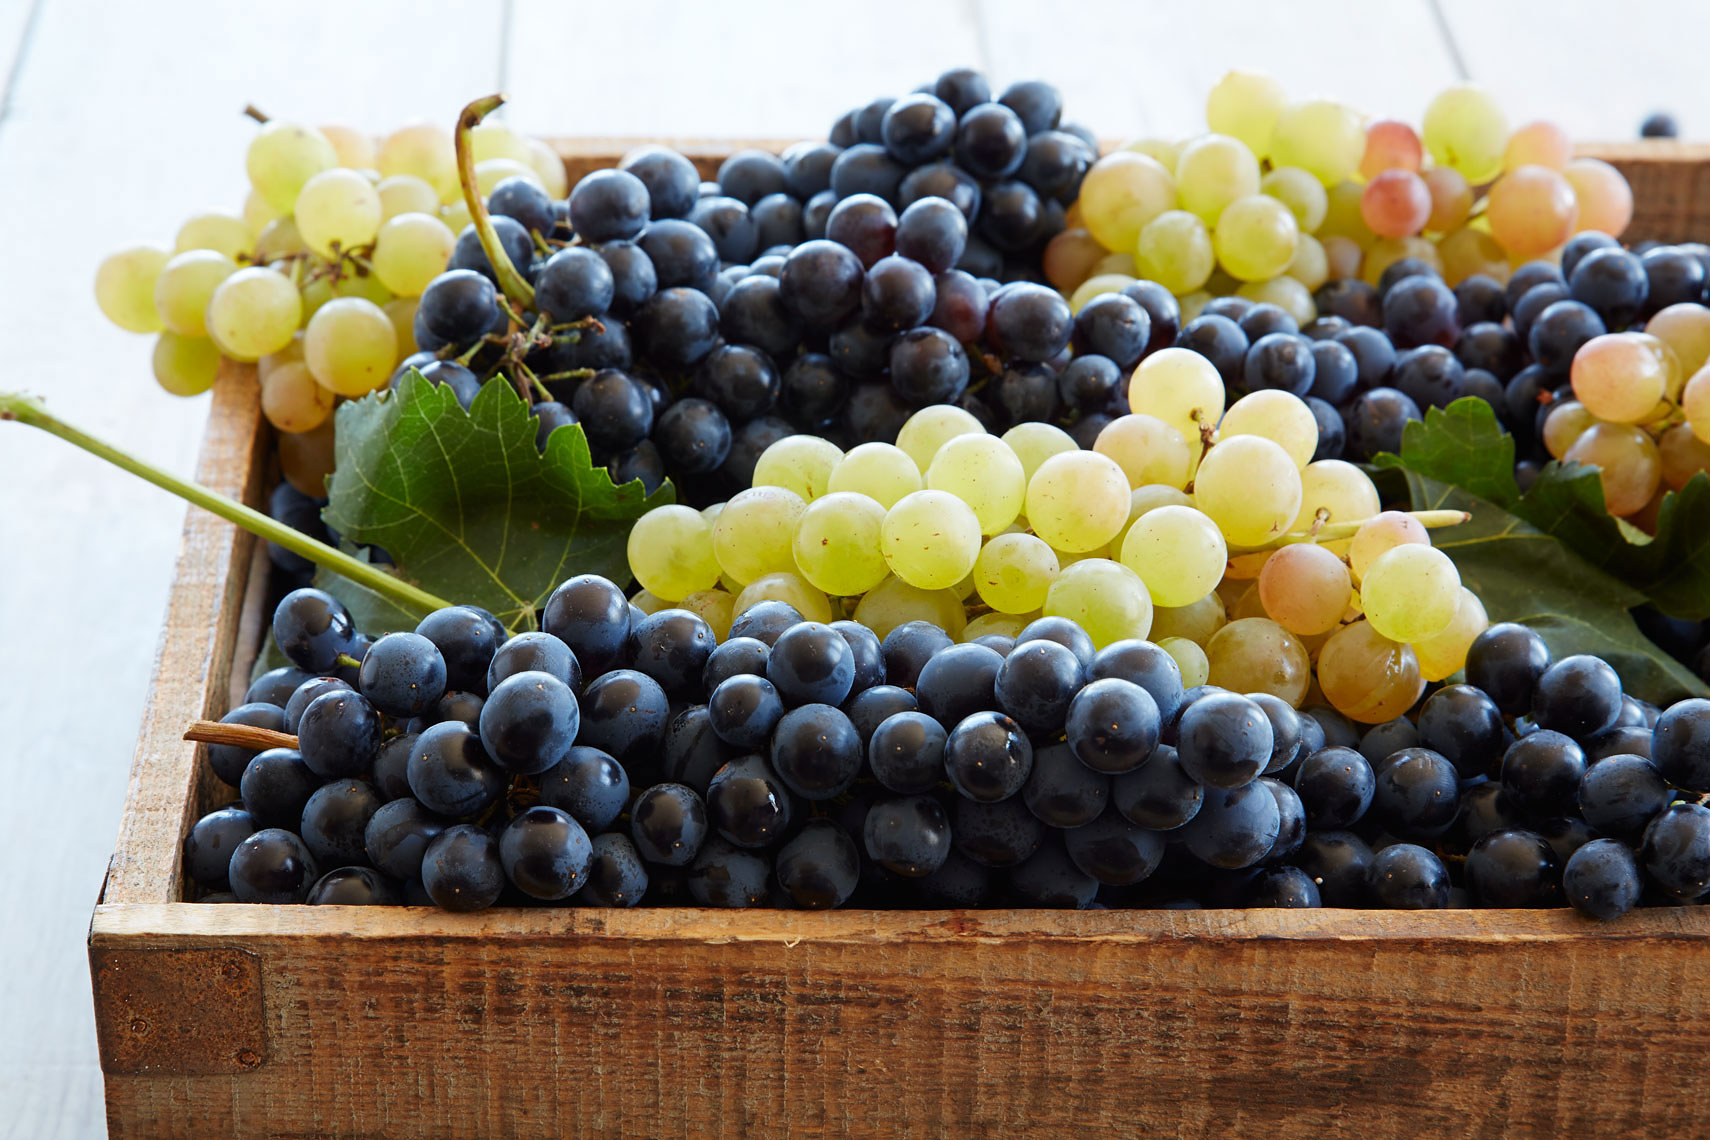 grapes_in_crate_11.jpg